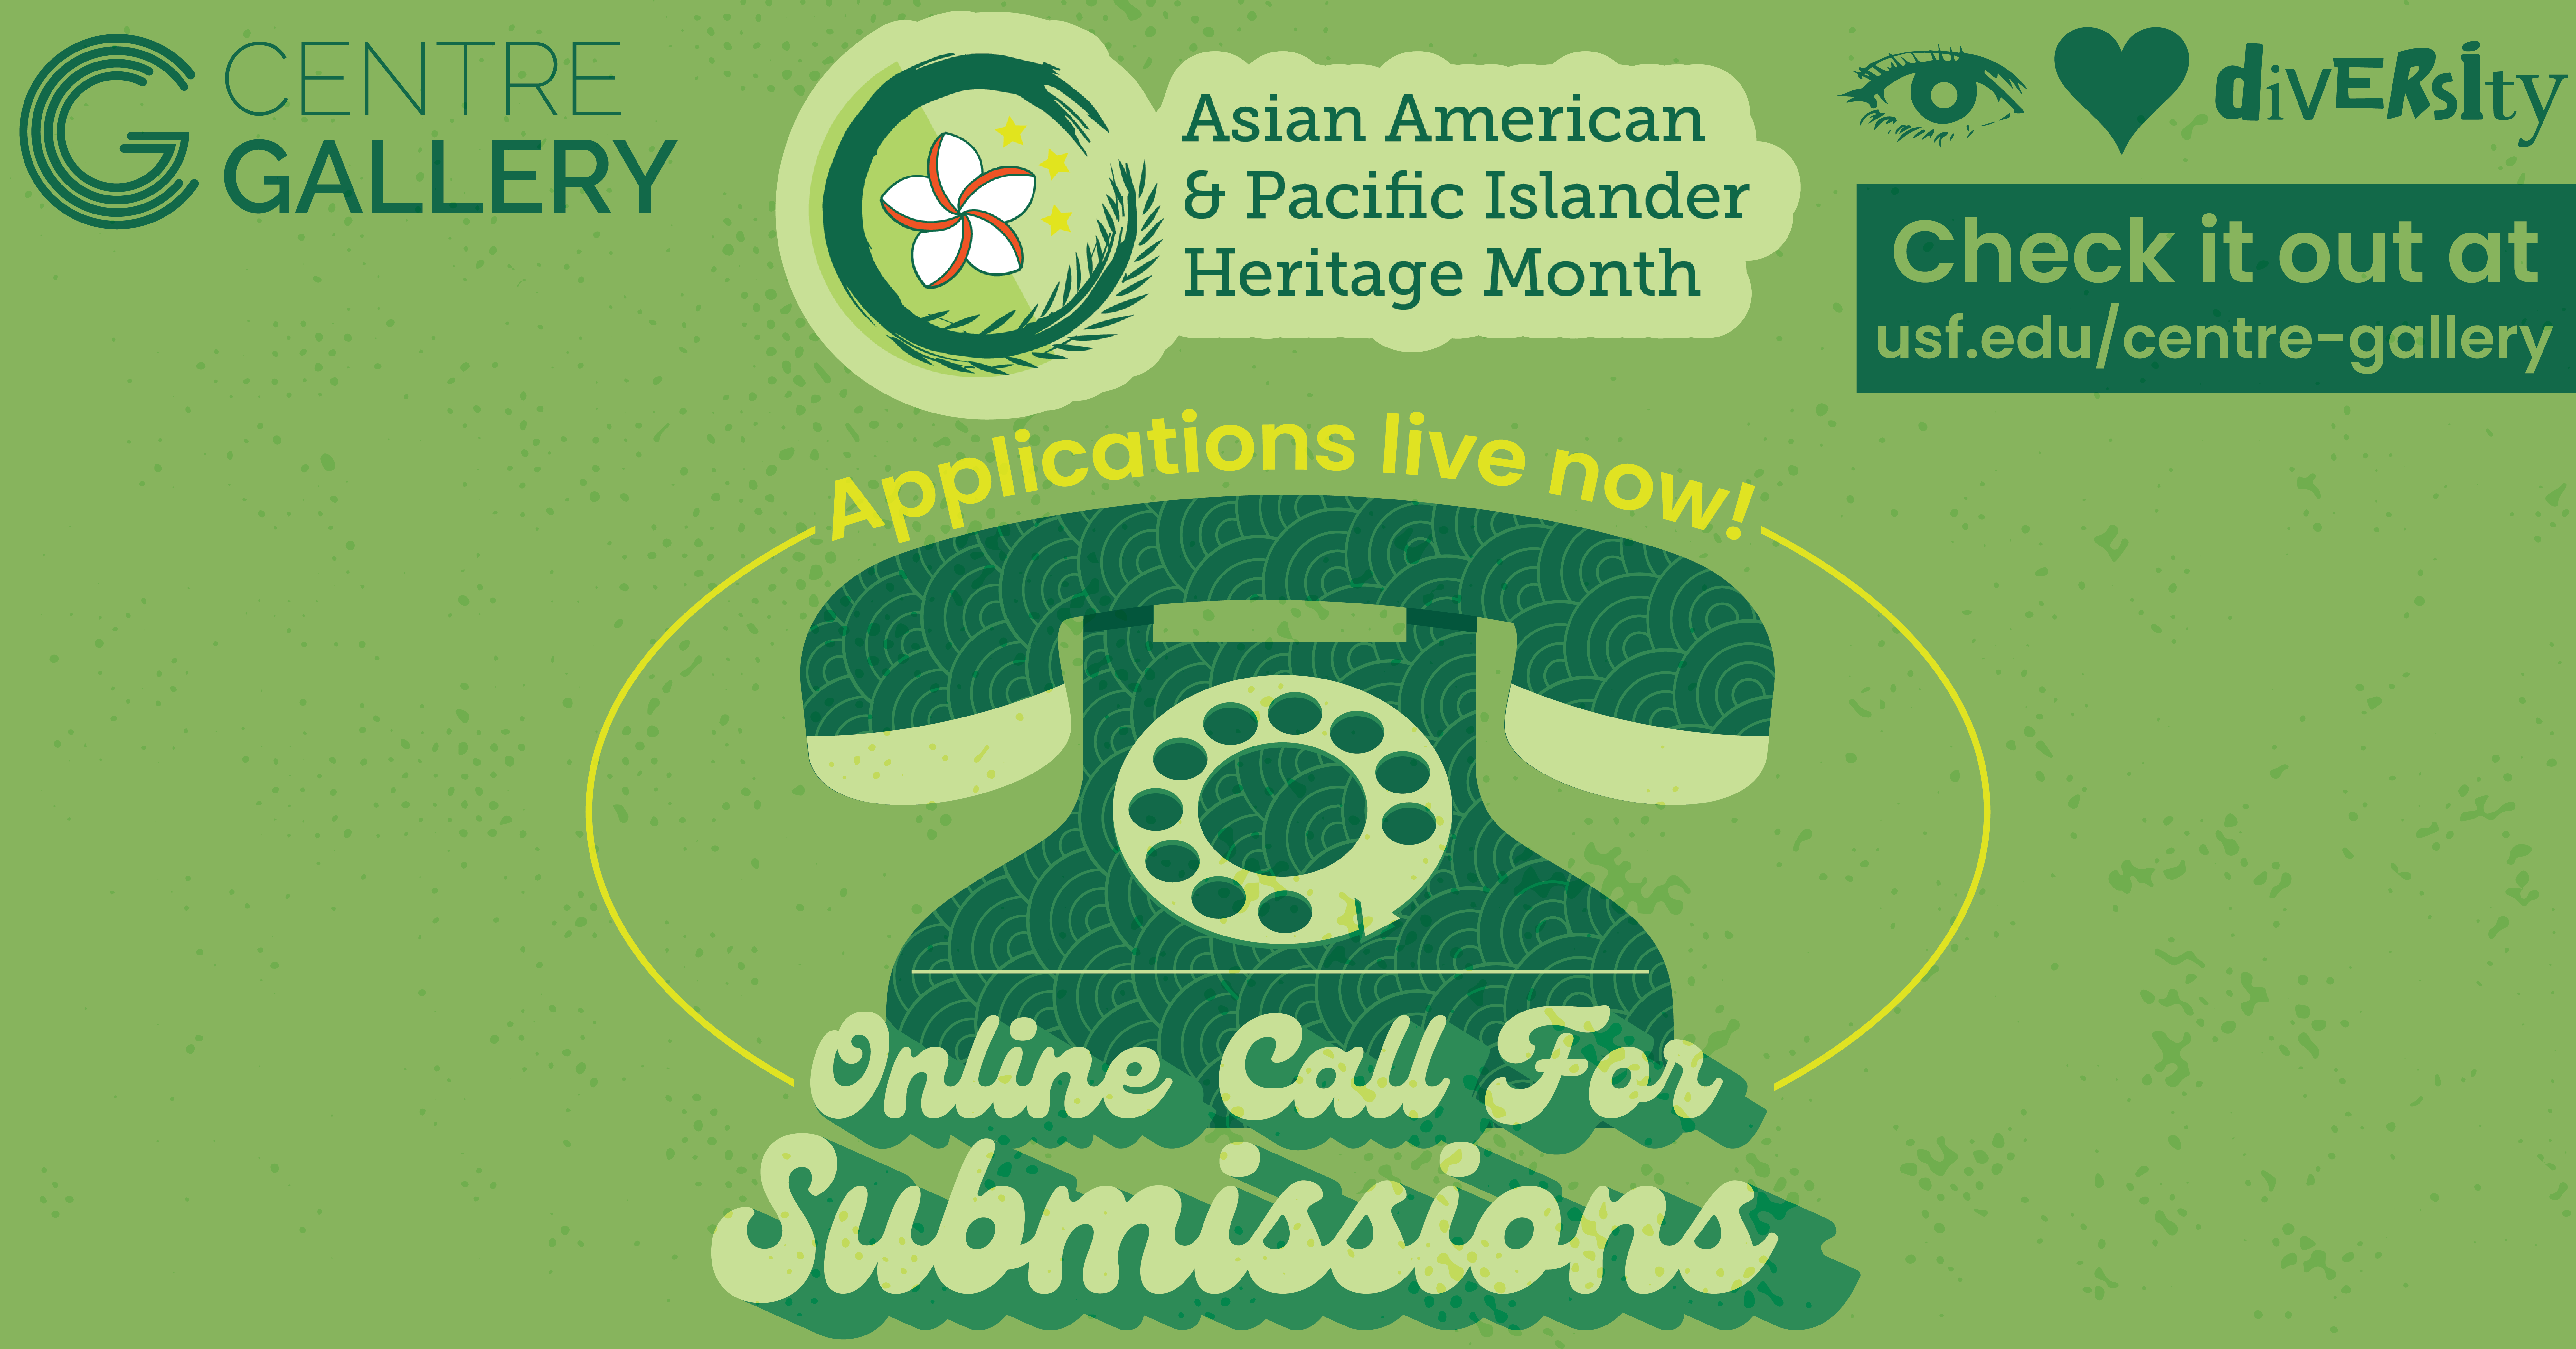 Centre Gallery: Asian American